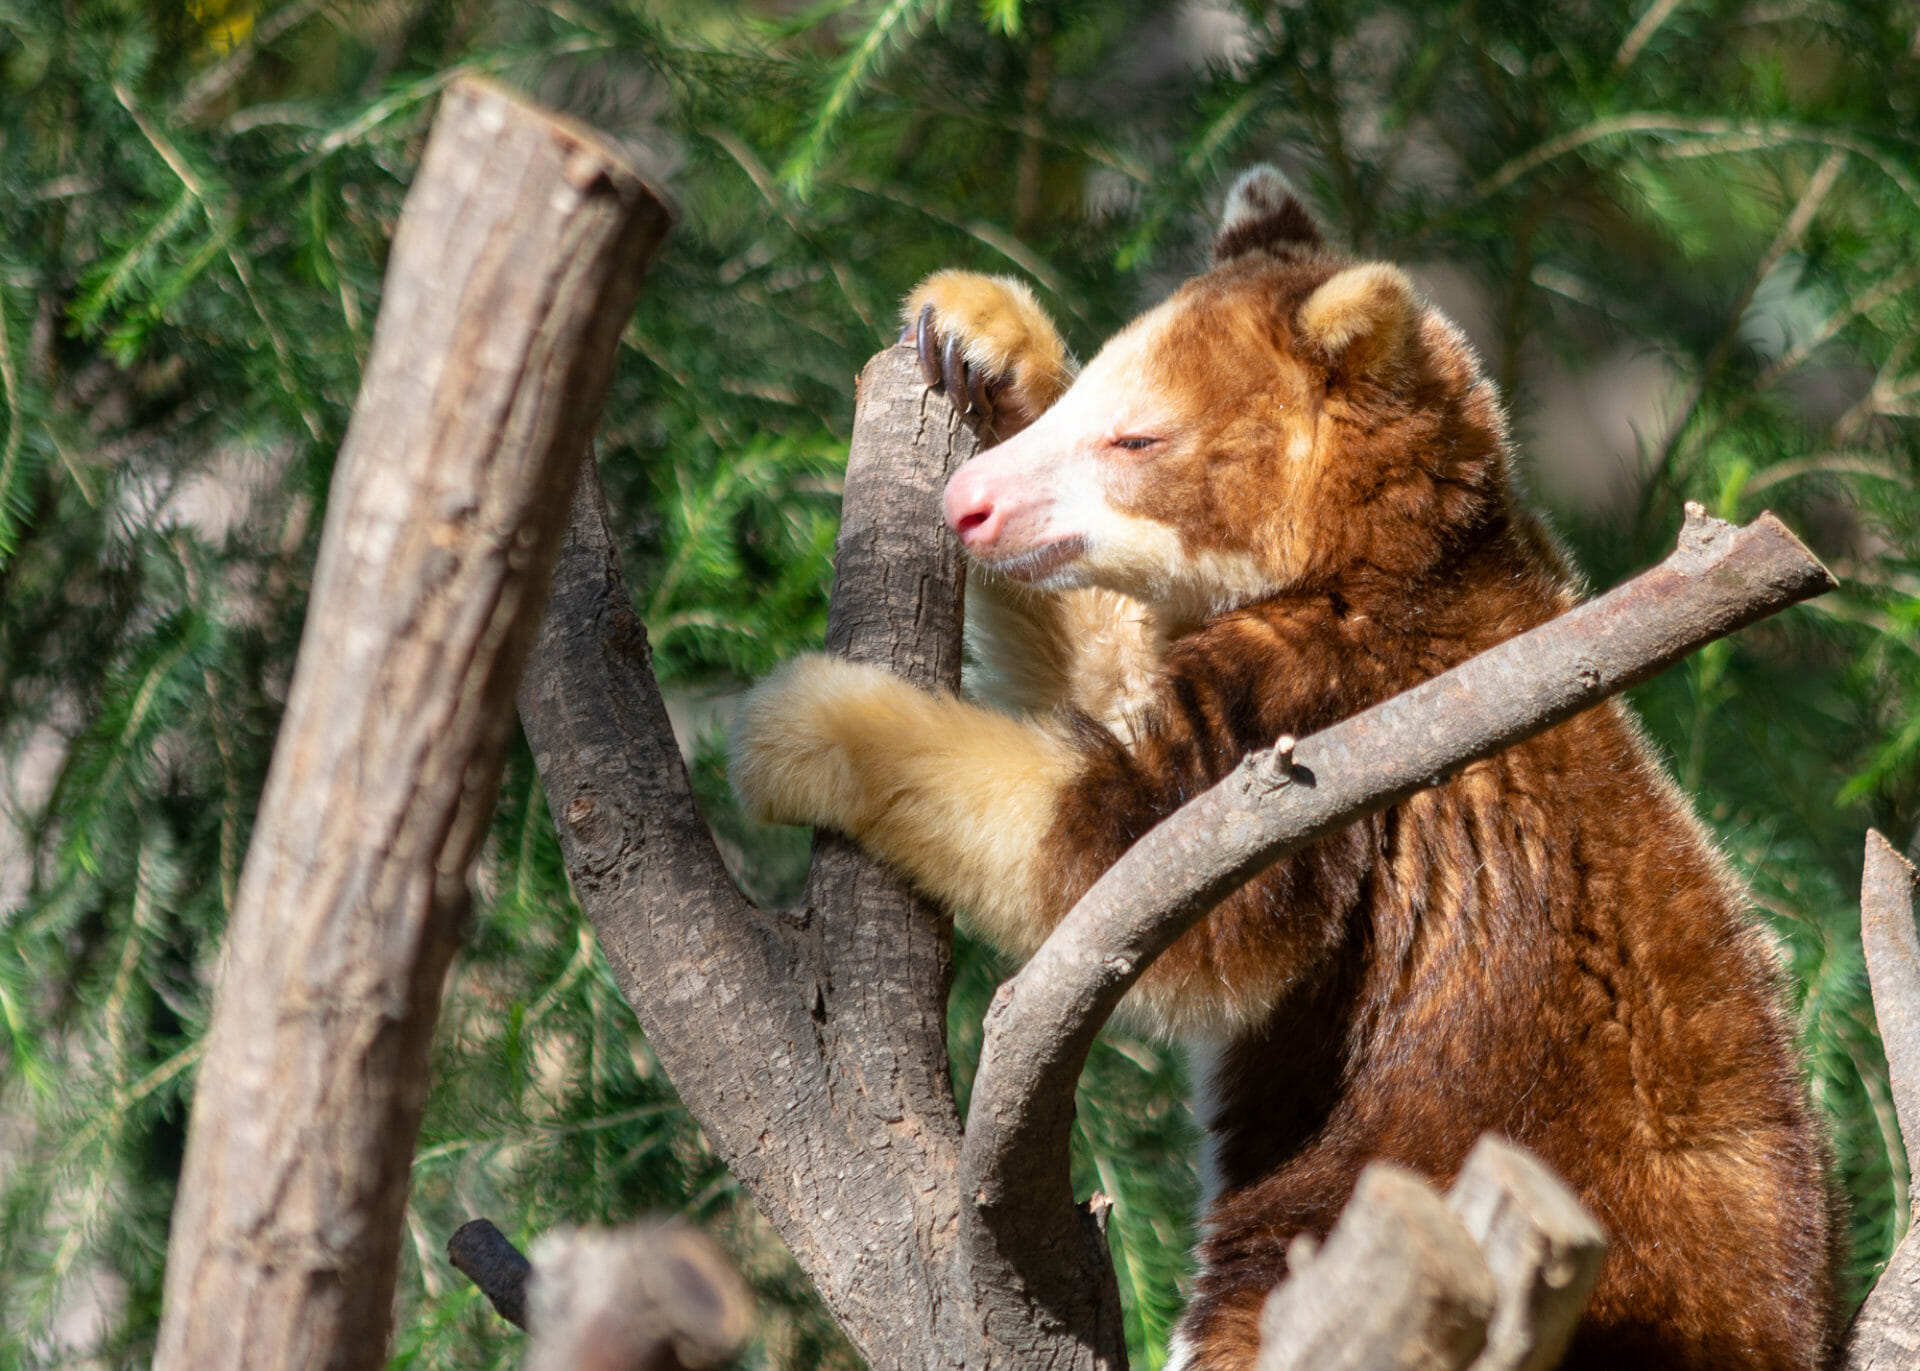 Totally adorable at the Australian Walkabout at San Diego Zoo's Safari Park